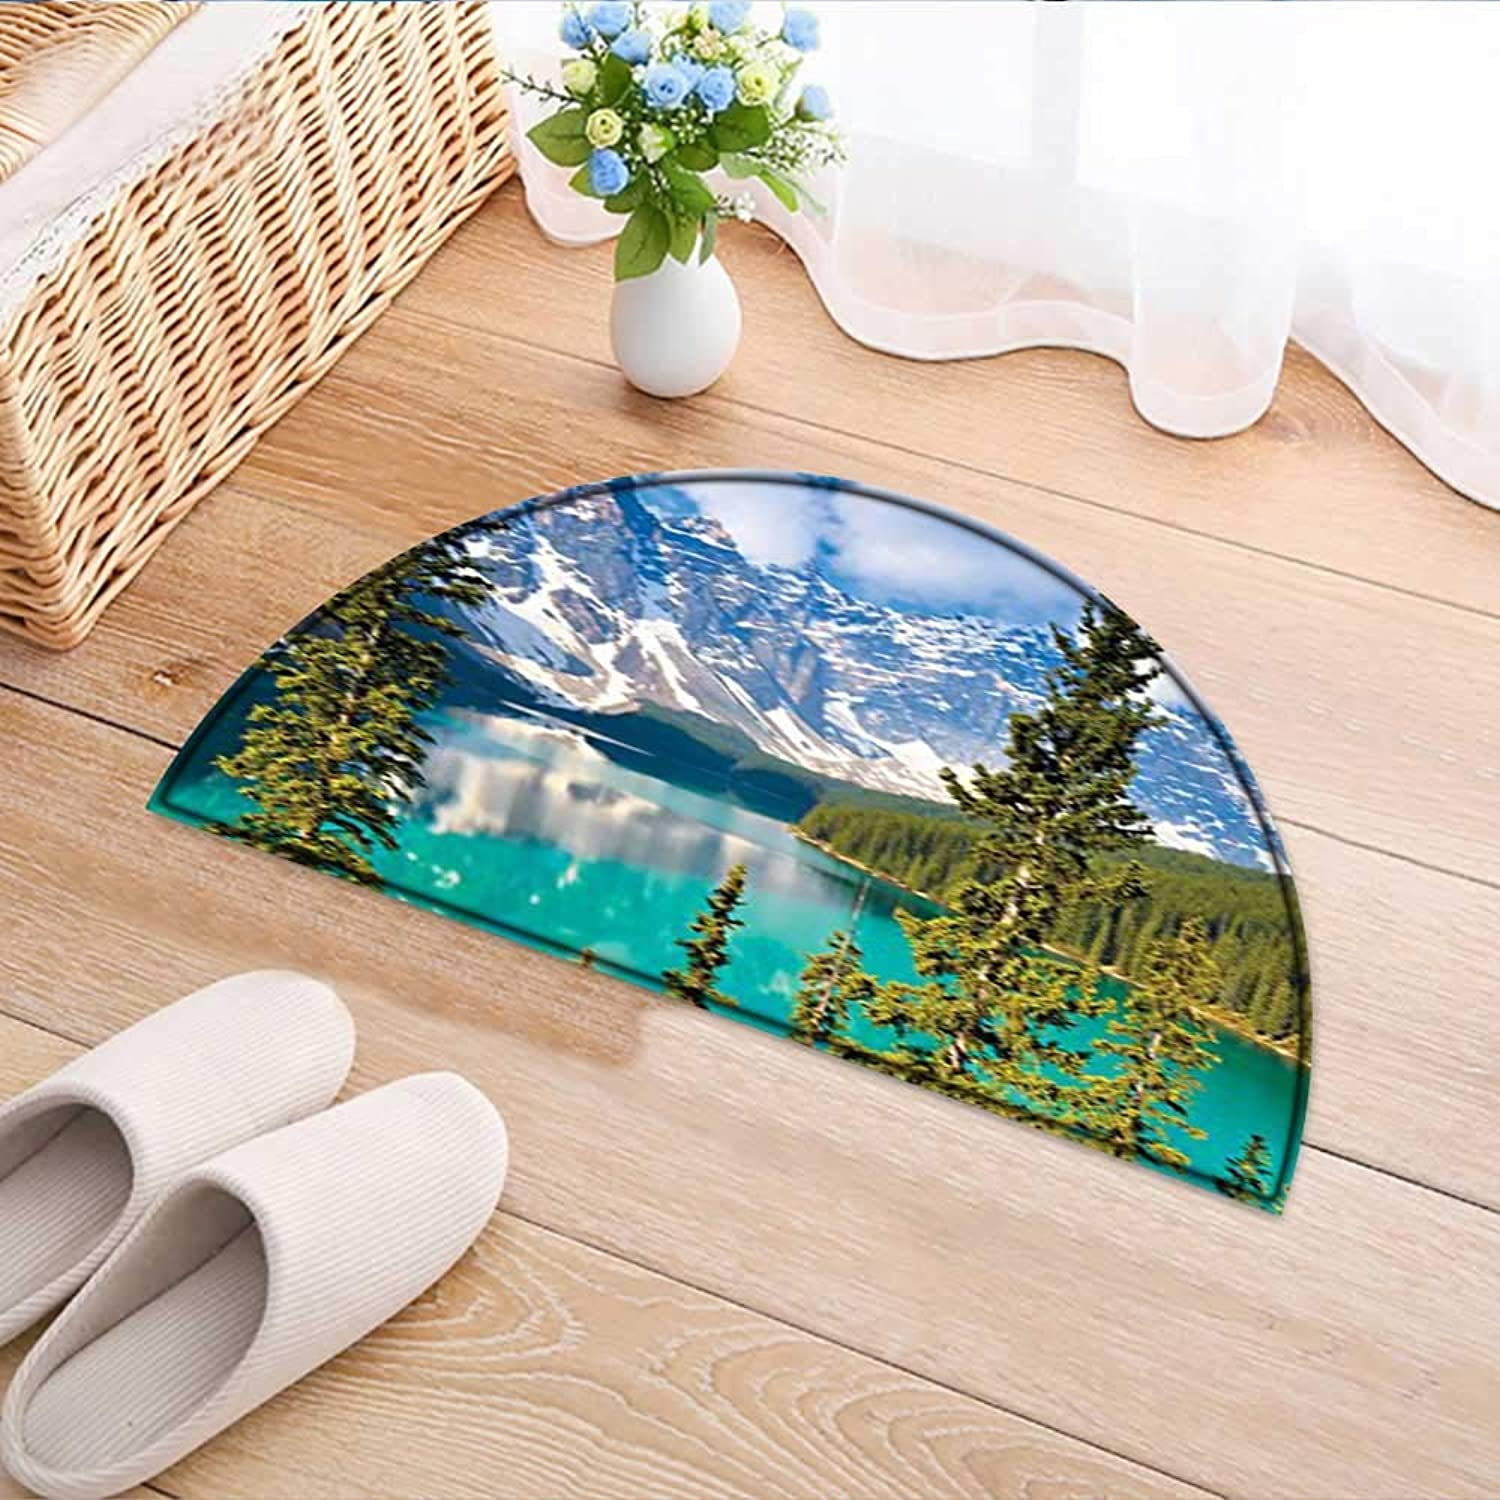 Semicircle Rug Kid Carpet Collection Sight of Moraine Lake Rocky Mountains and Summer Forest After Alive Tall Home Decor Foor Carpe W39 x H28 INCH